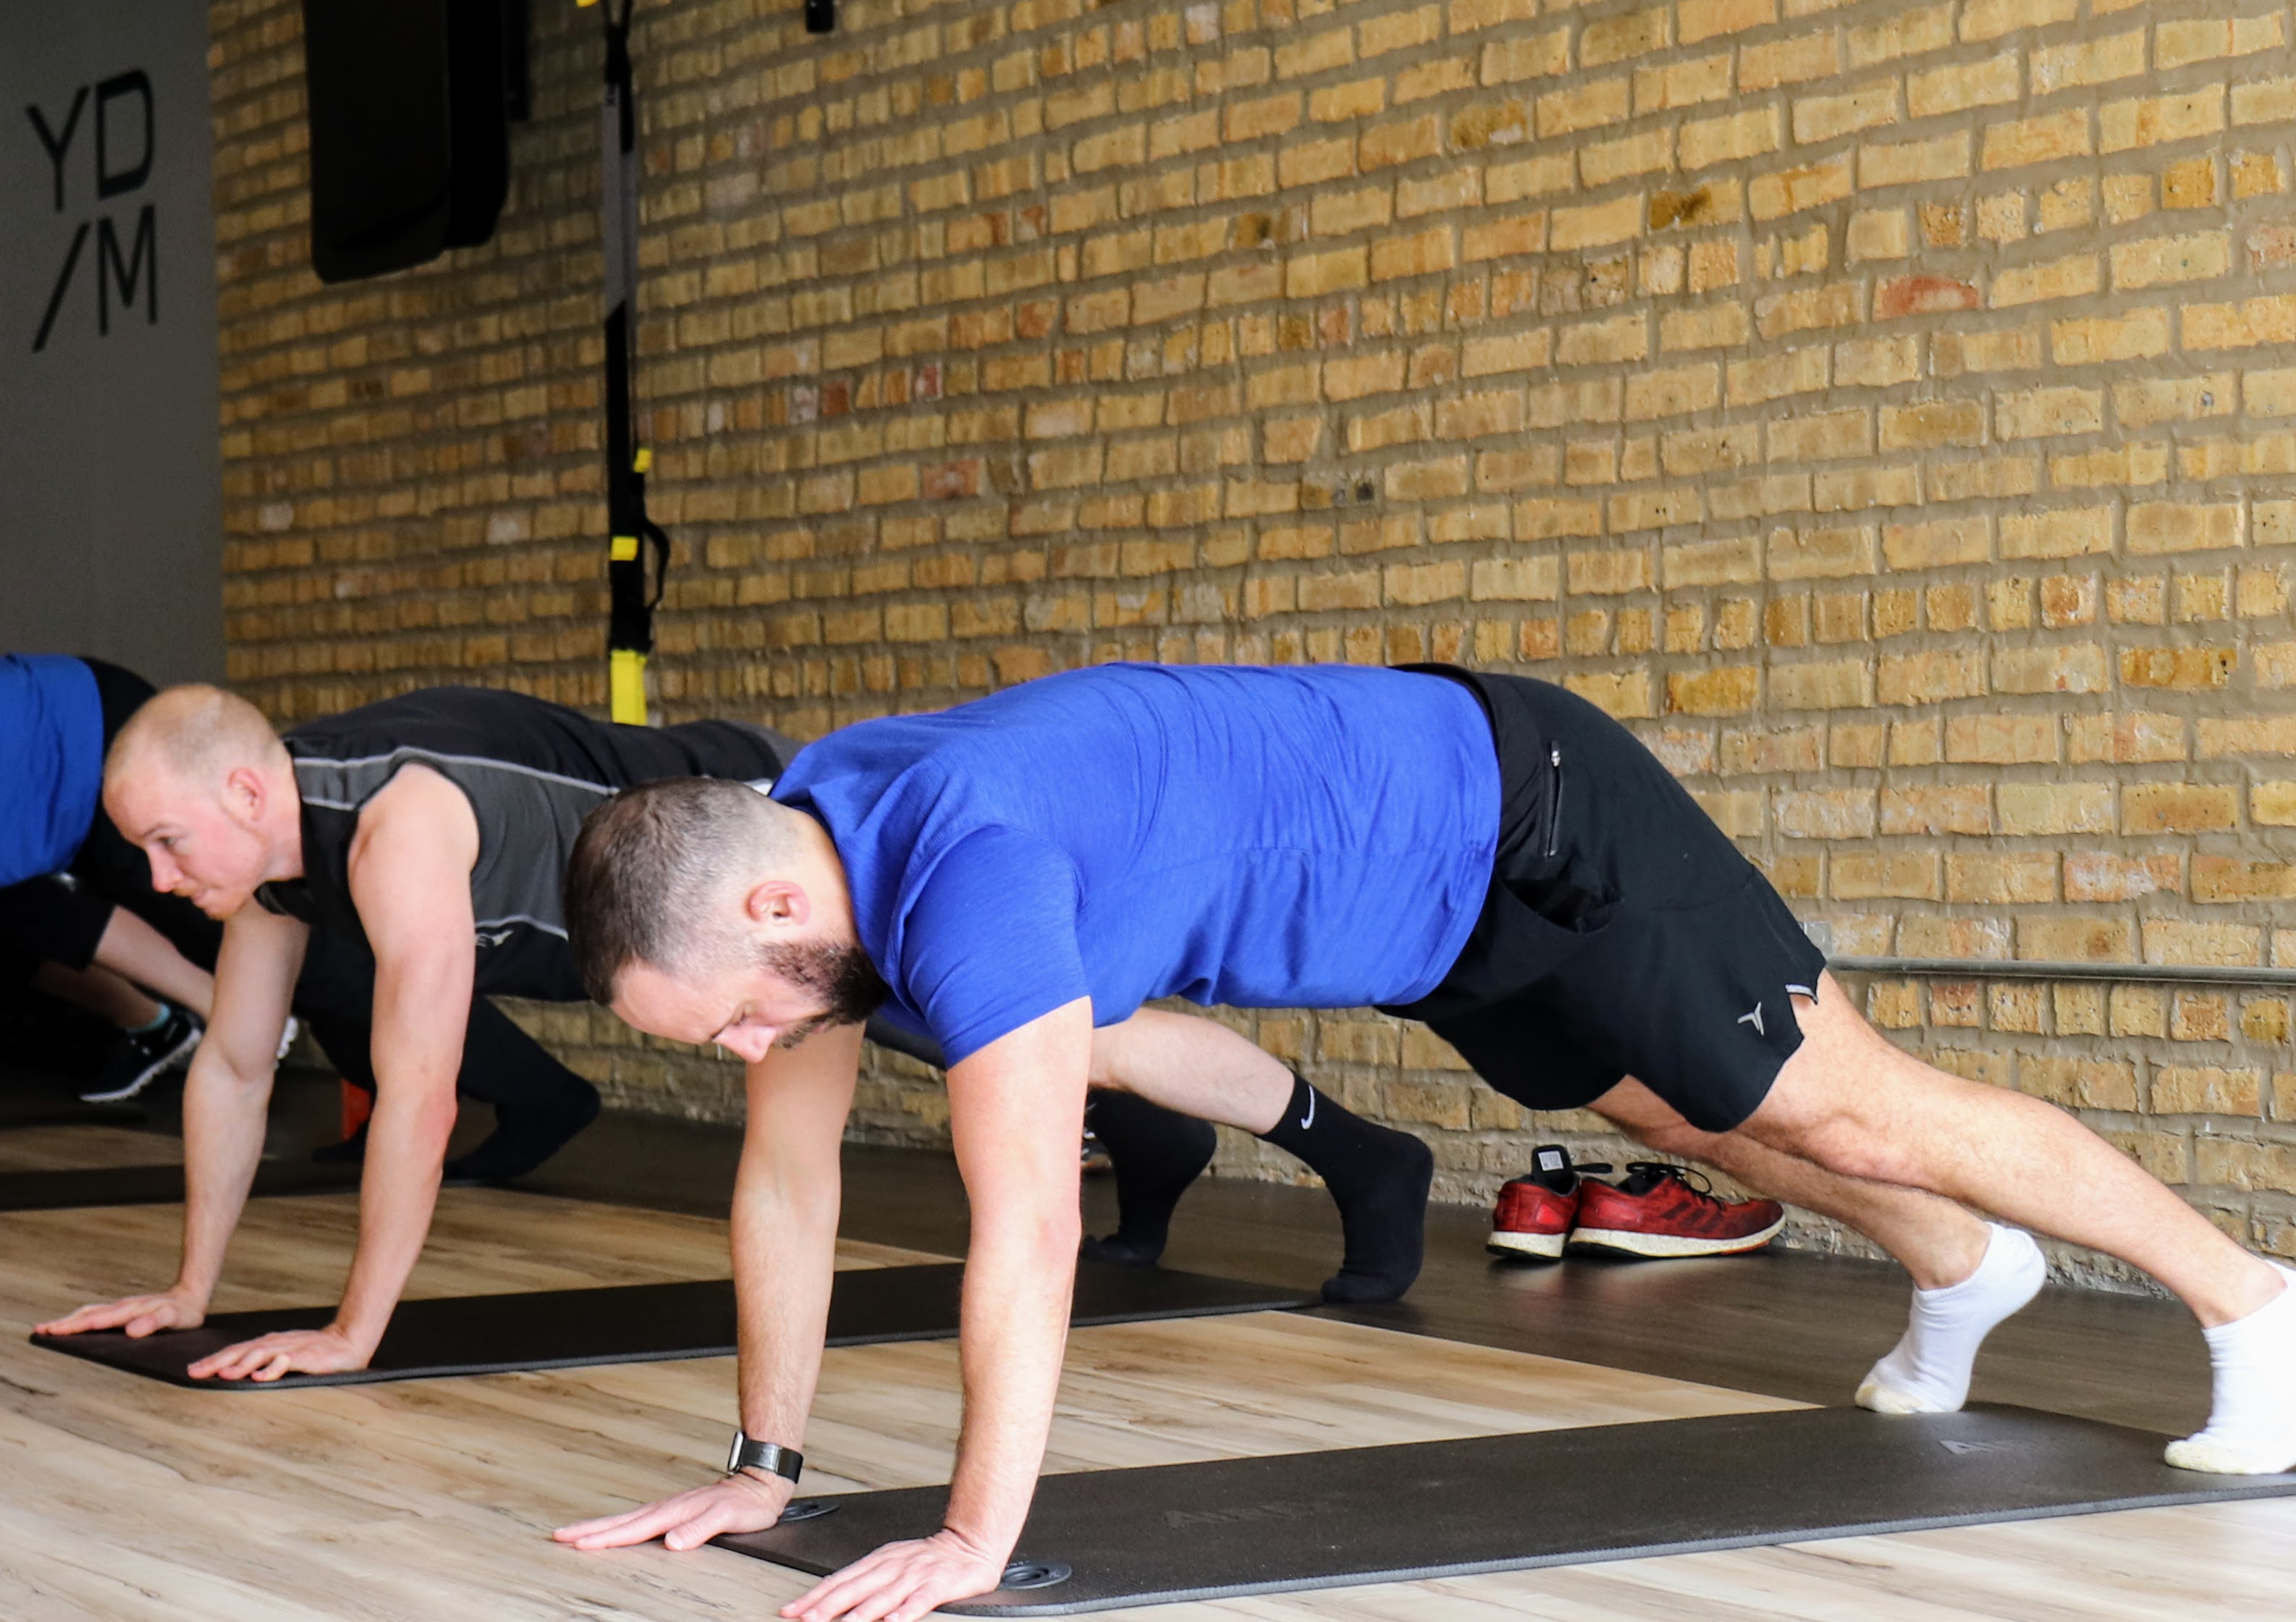 man performing plank exercise on mat